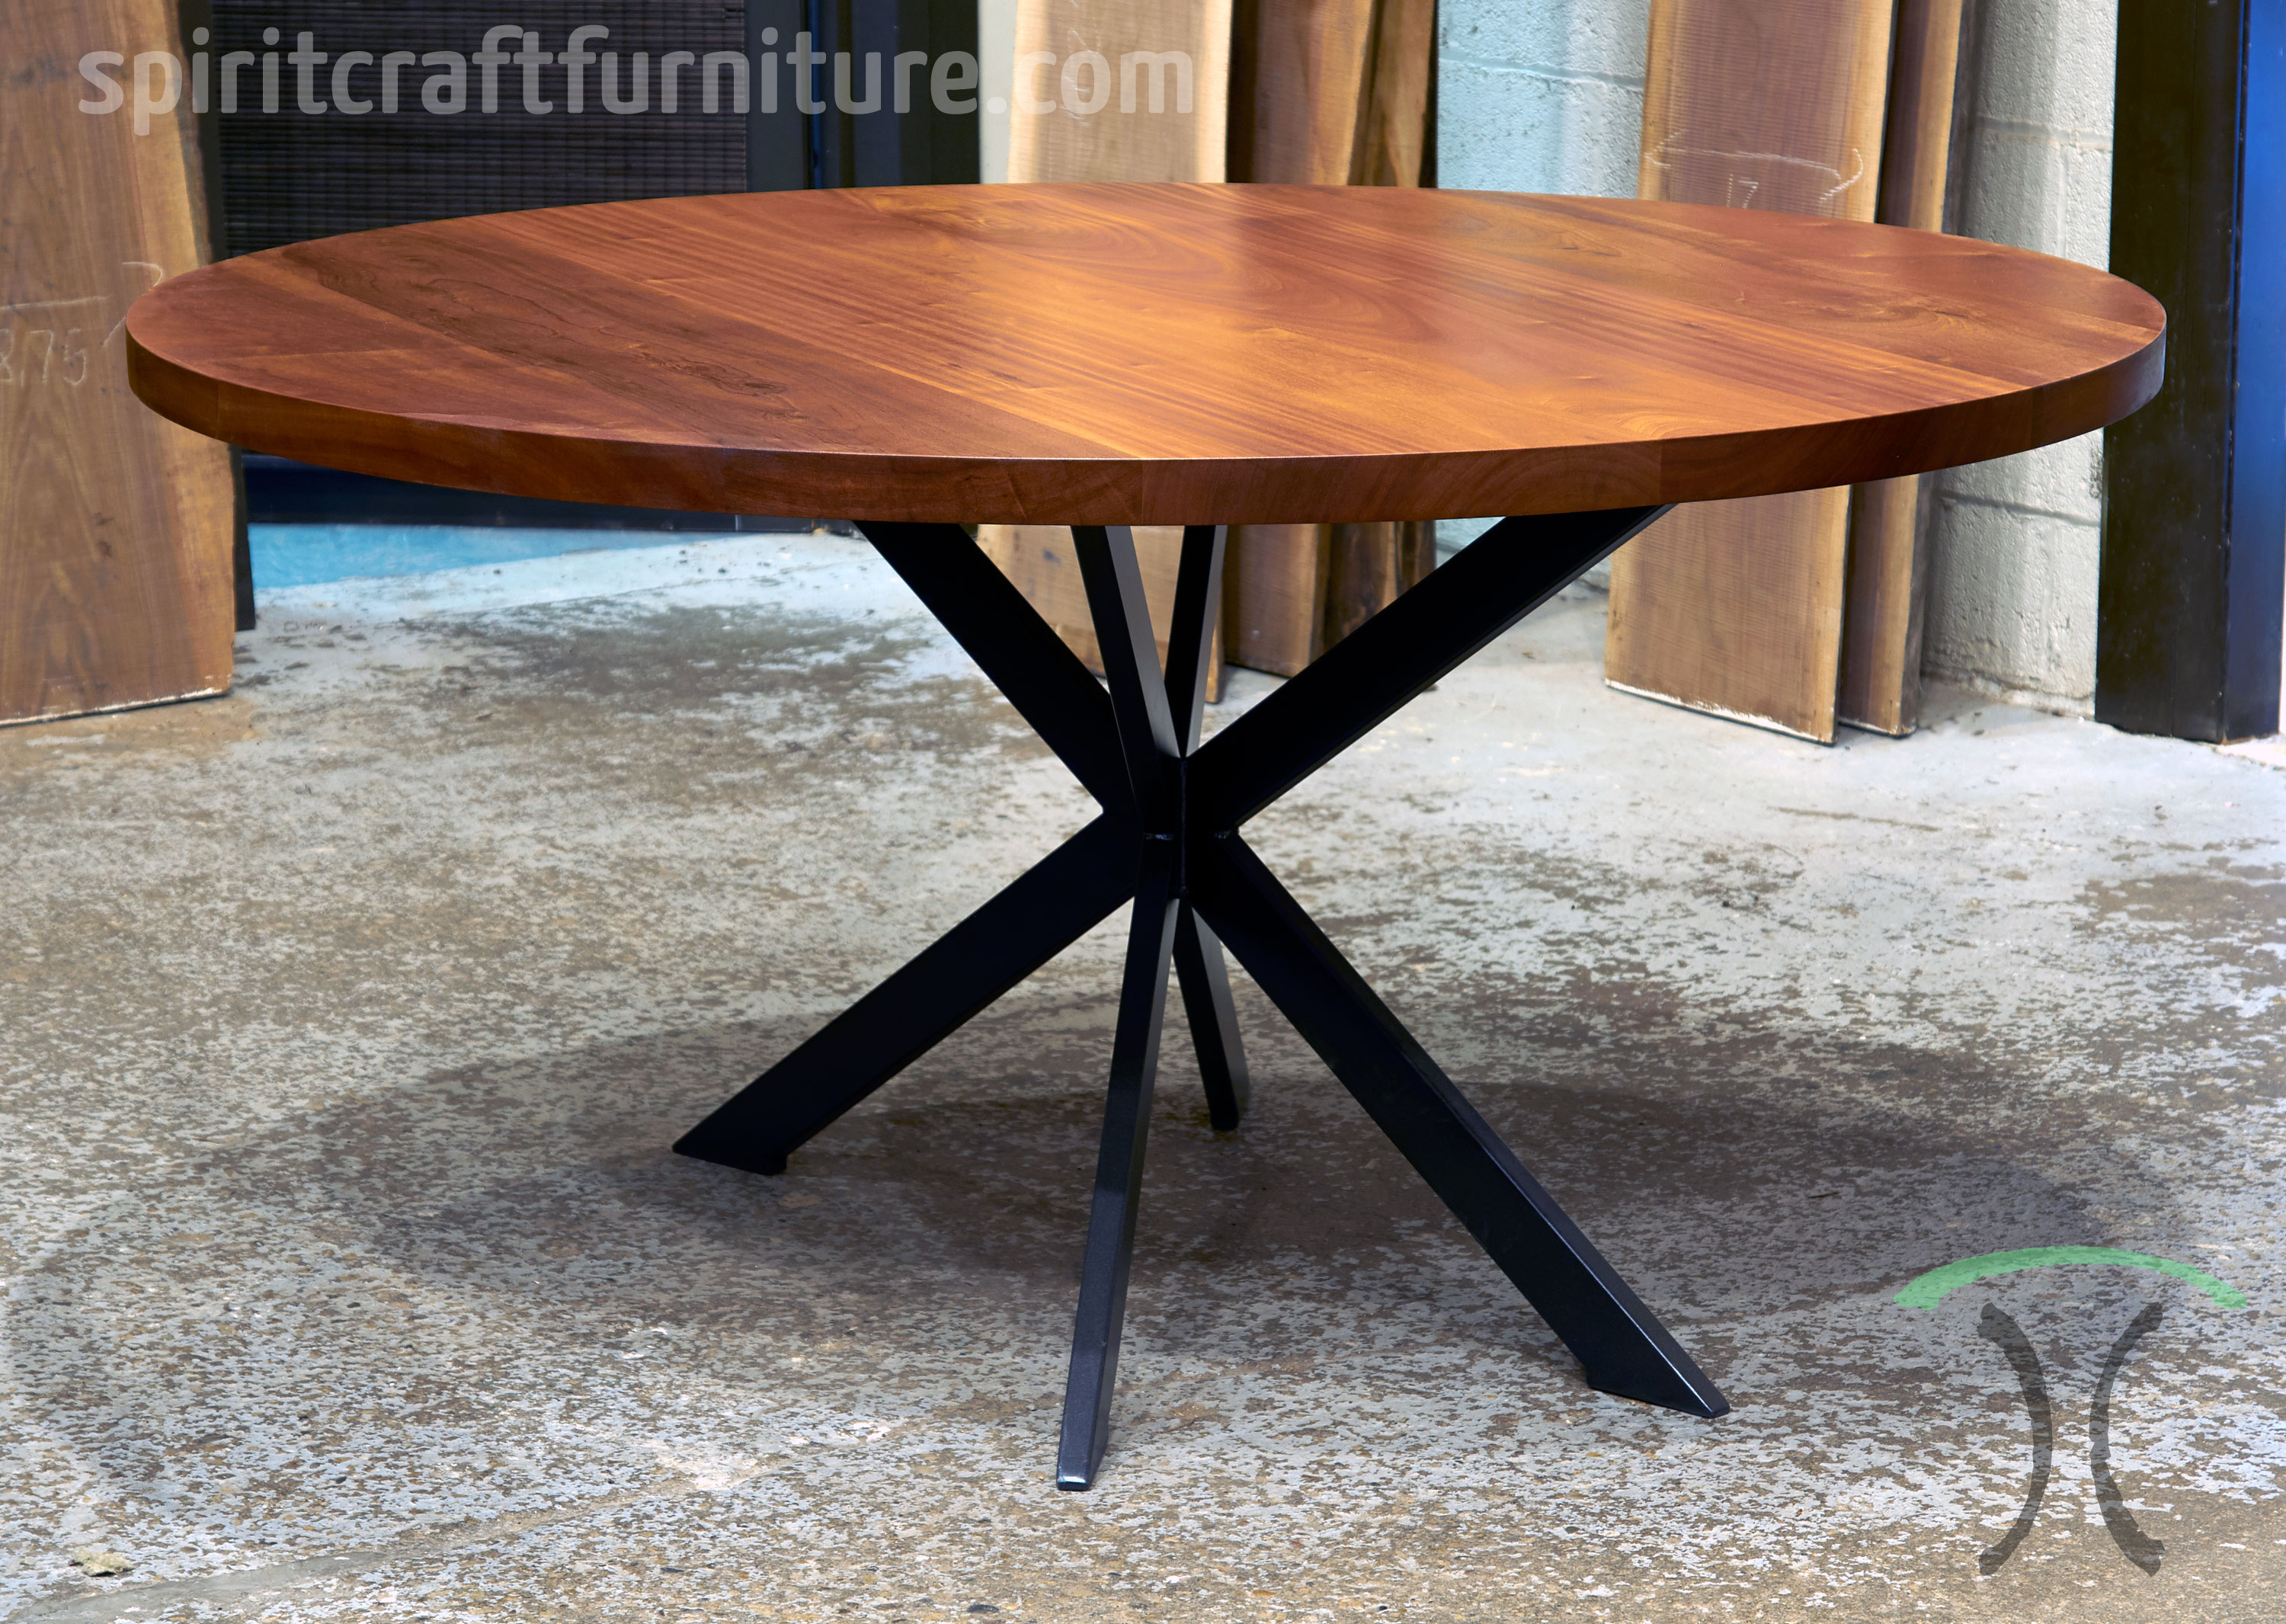 Live Edge Wood Slab Conference Room Tables And Desk Tops - 72 conference table